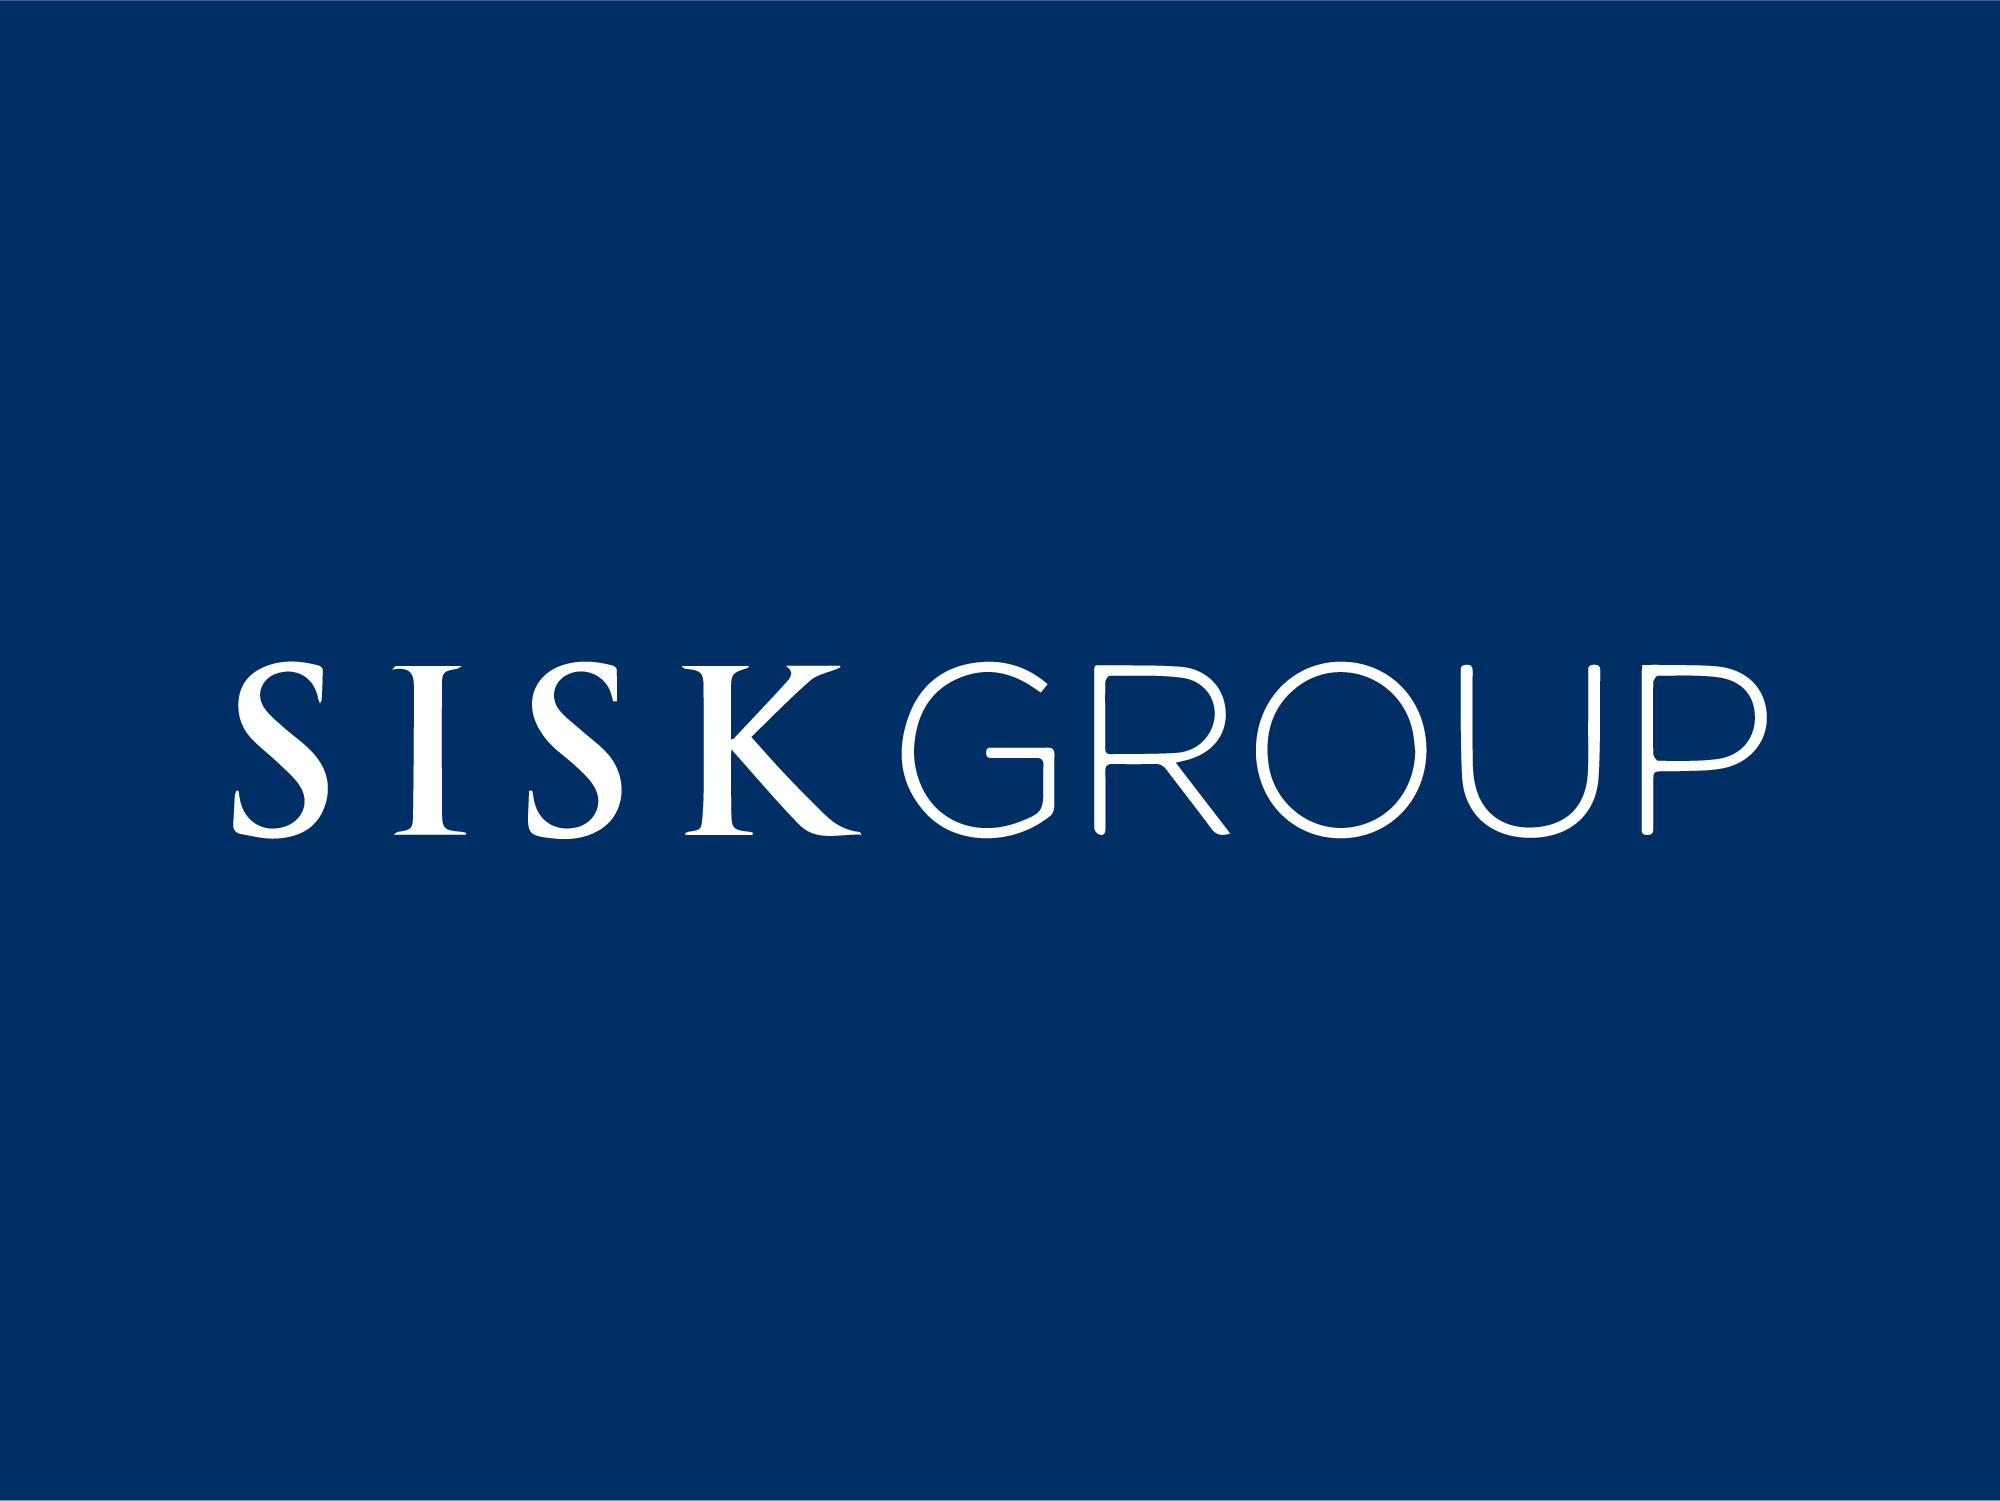 Sisk Group - Strategic advice to the Sisk Group and advisory on new group funding faciltities